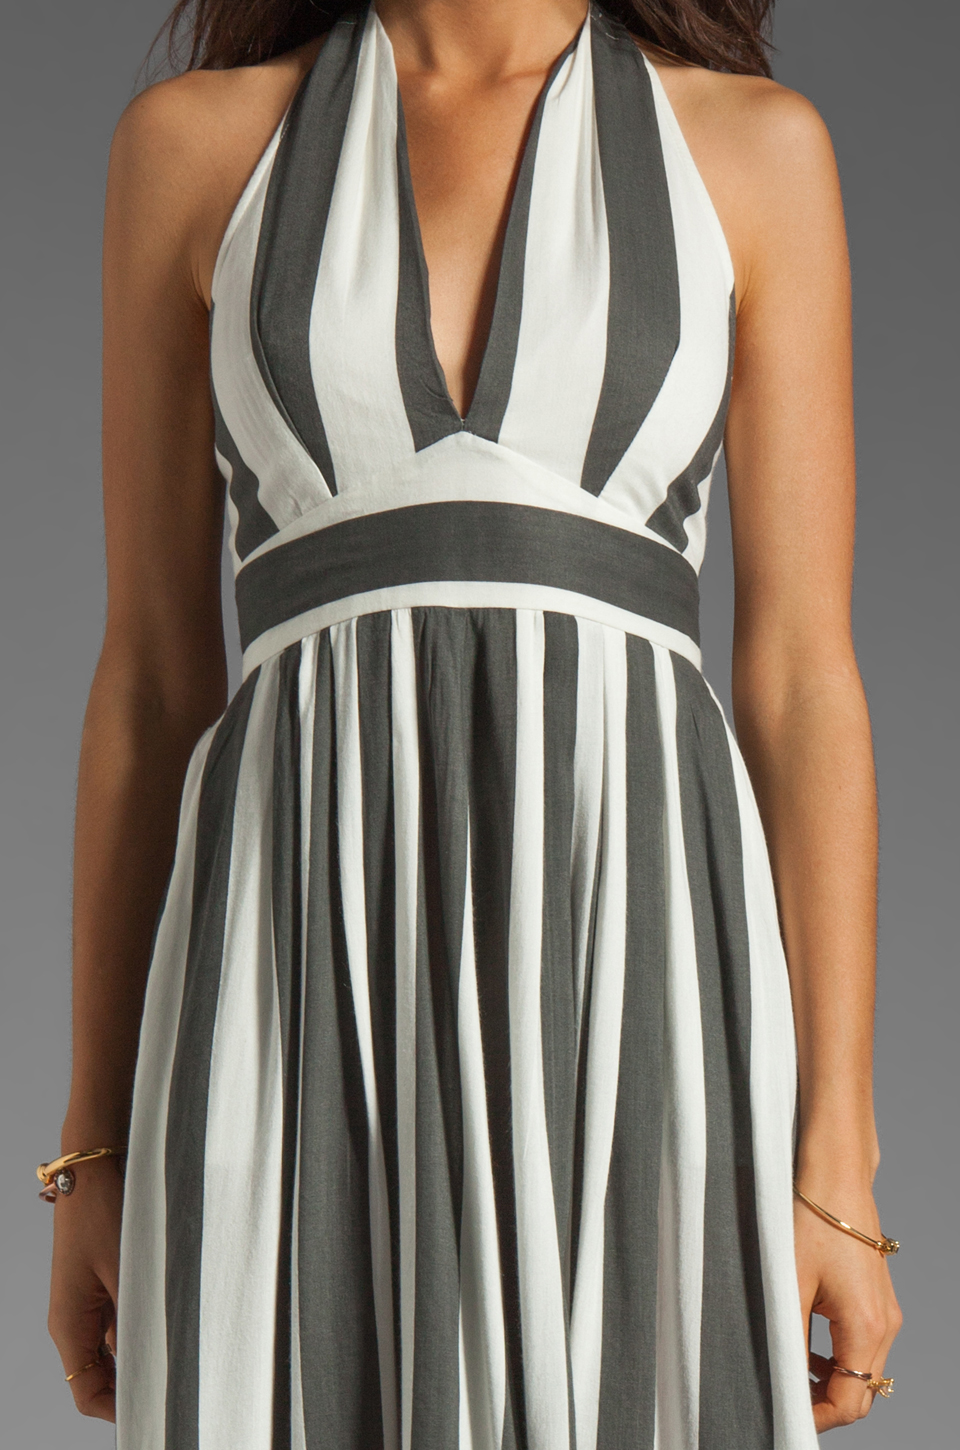 NEUW Daphne Dresss in Black/White Stripe